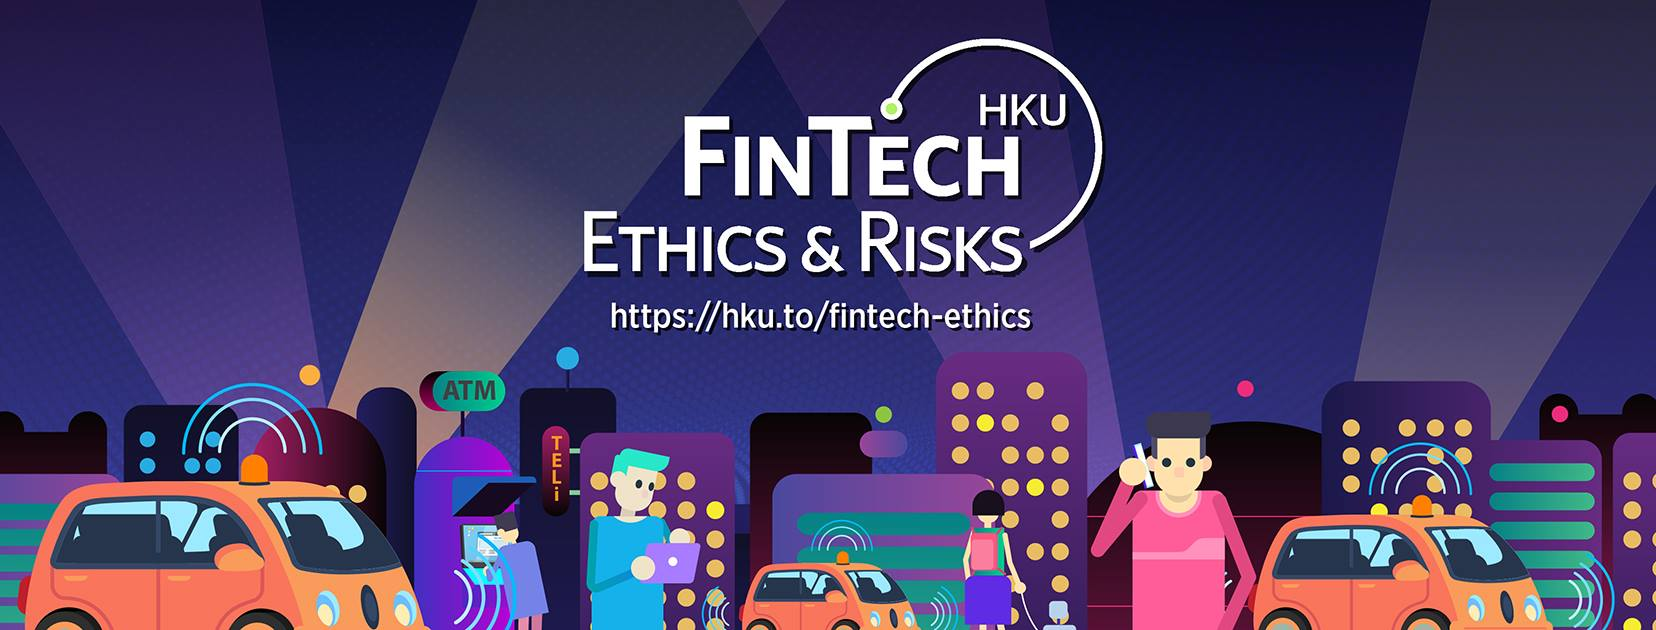 fintech ethics and risks banner